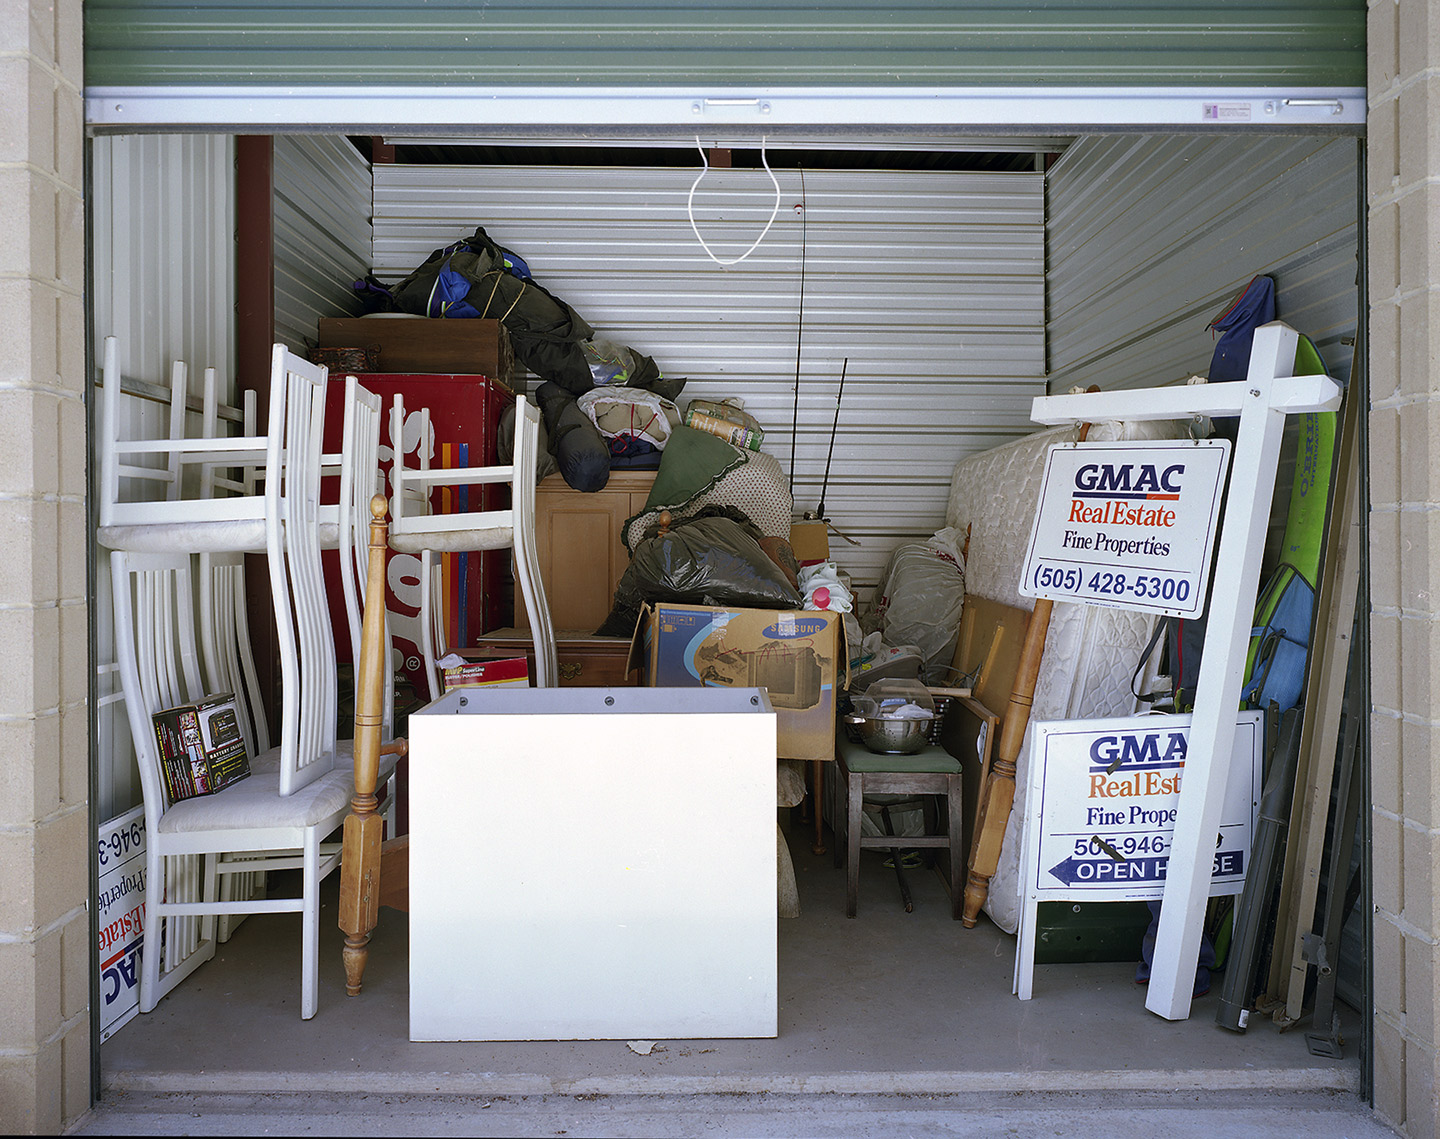 People use self-storage to store their stuff, often in response to disruptions in their domestic lives. But when unemployment, foreclosure, and other calamities force people out of their homes, storage units can be appropriated for new uses.